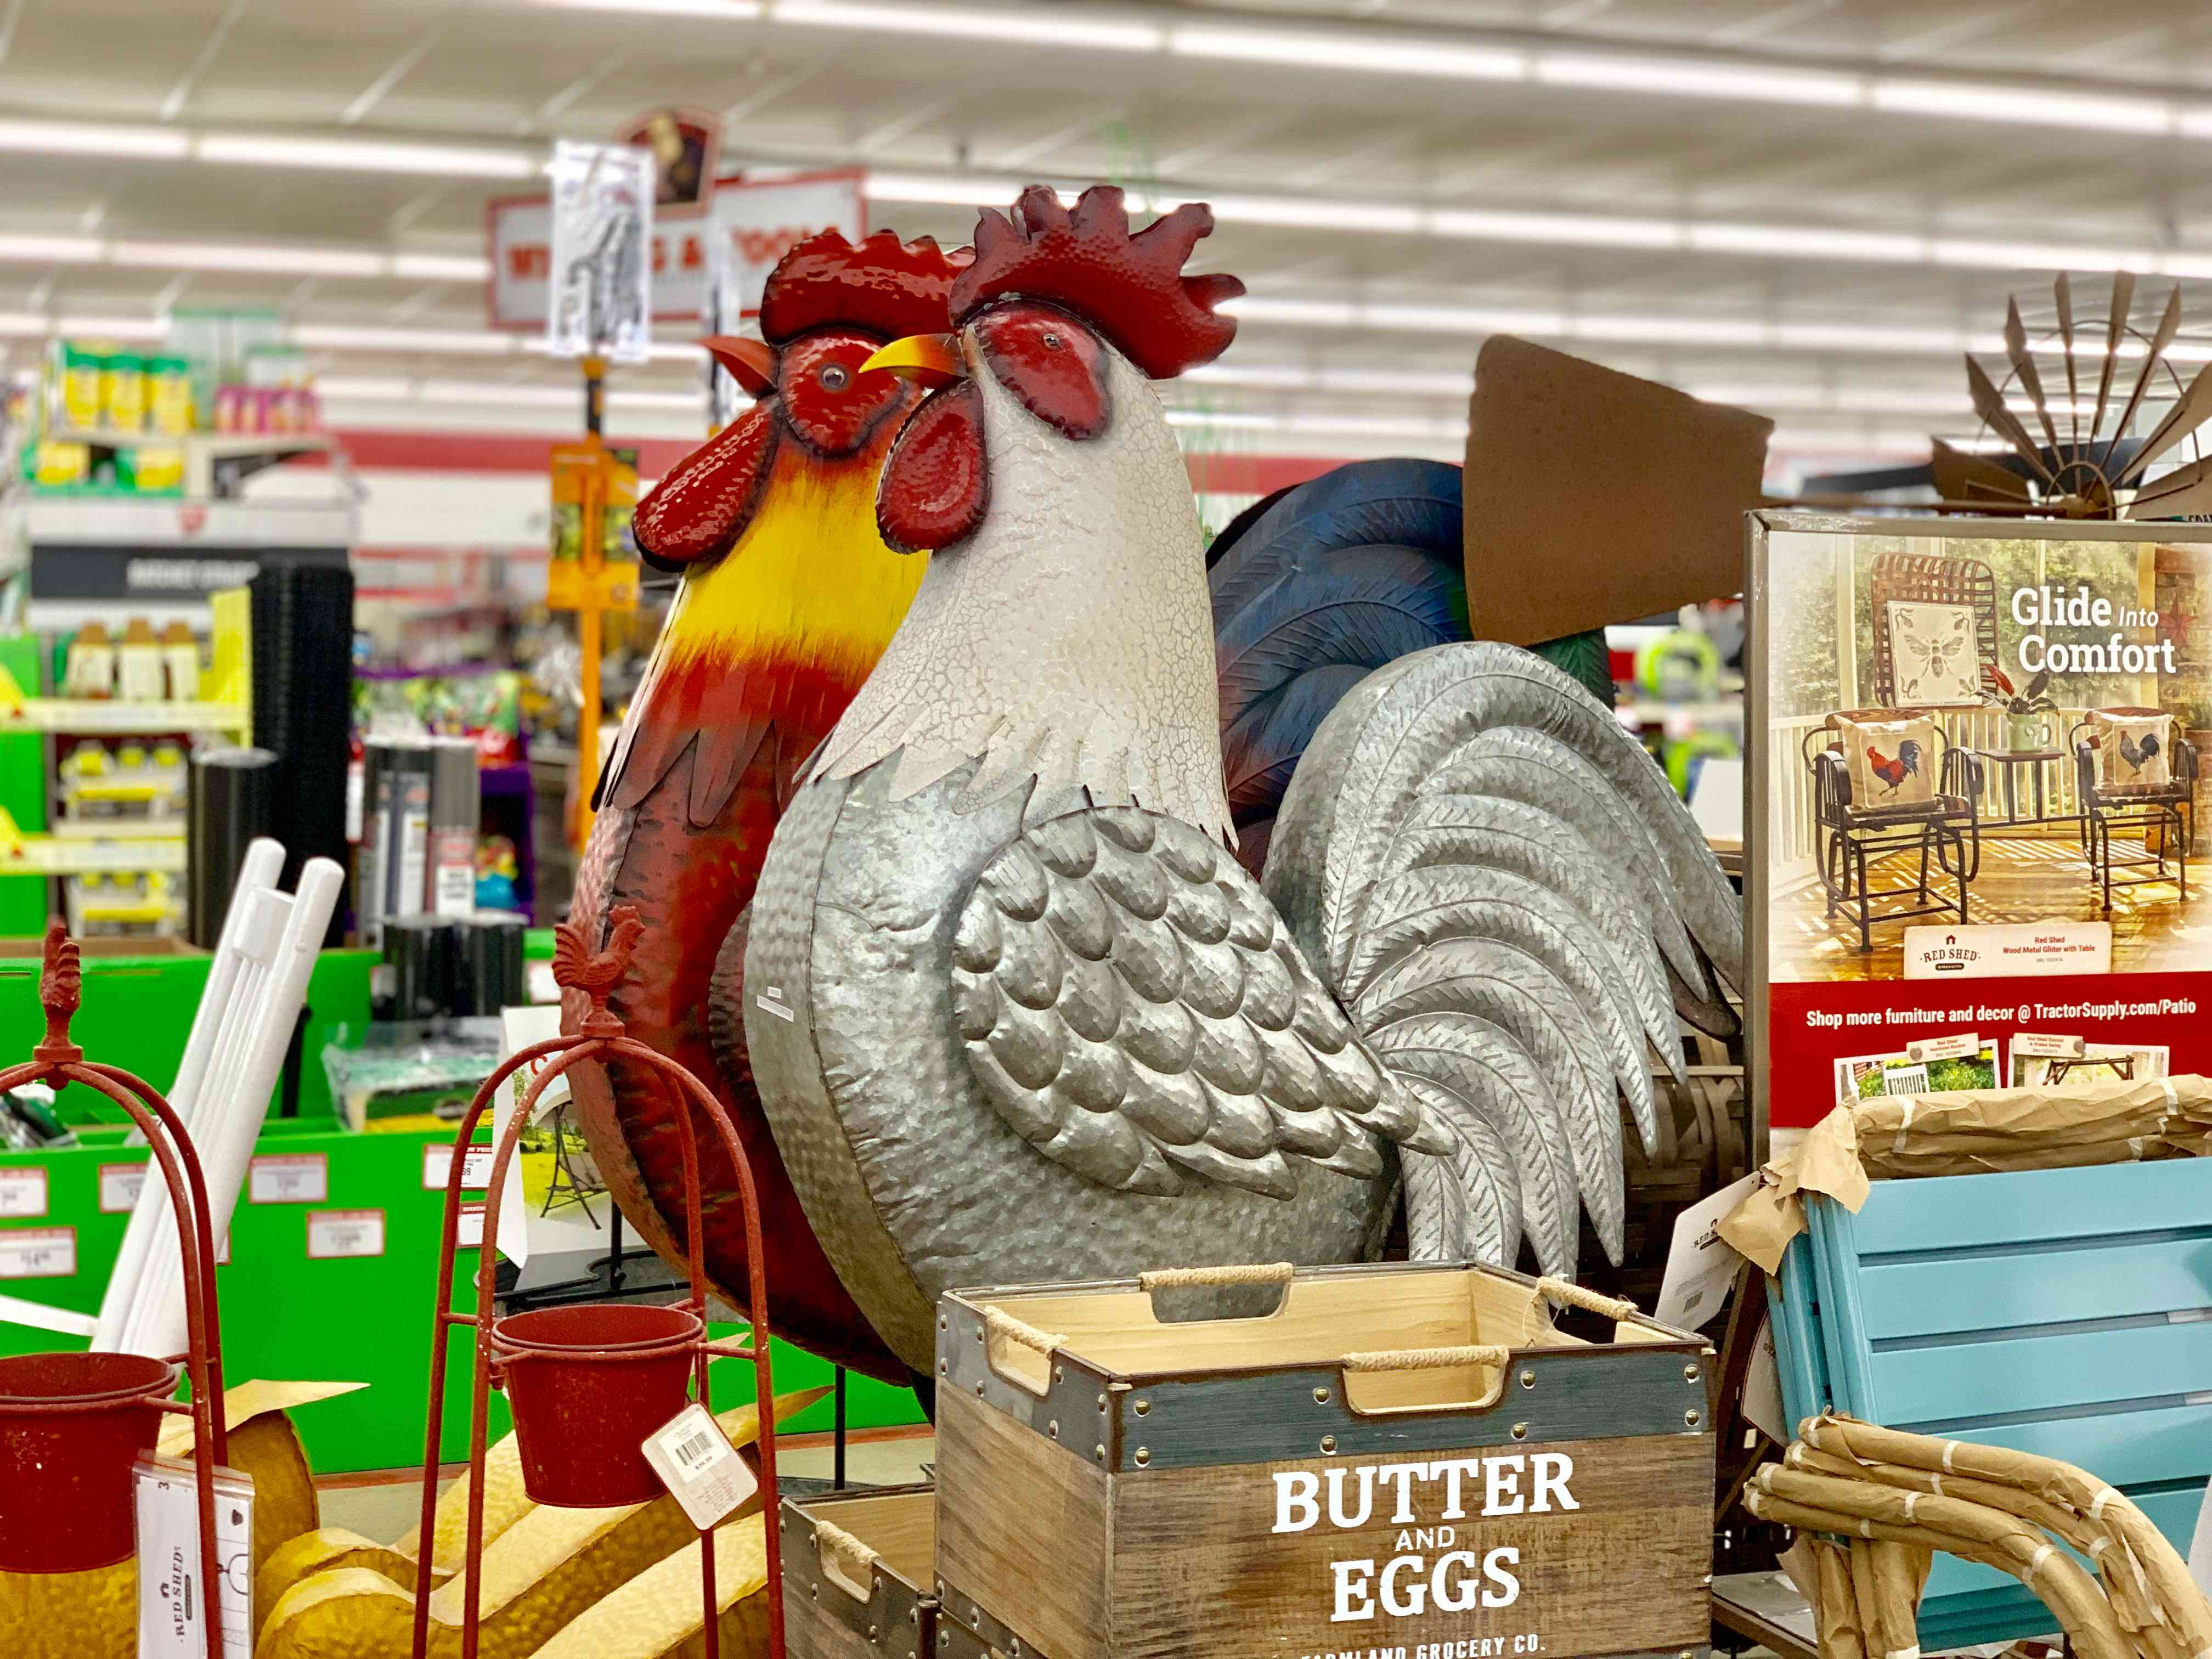 Despite its name, you can buy a lot more at Tractor Supply Company than just tractors.